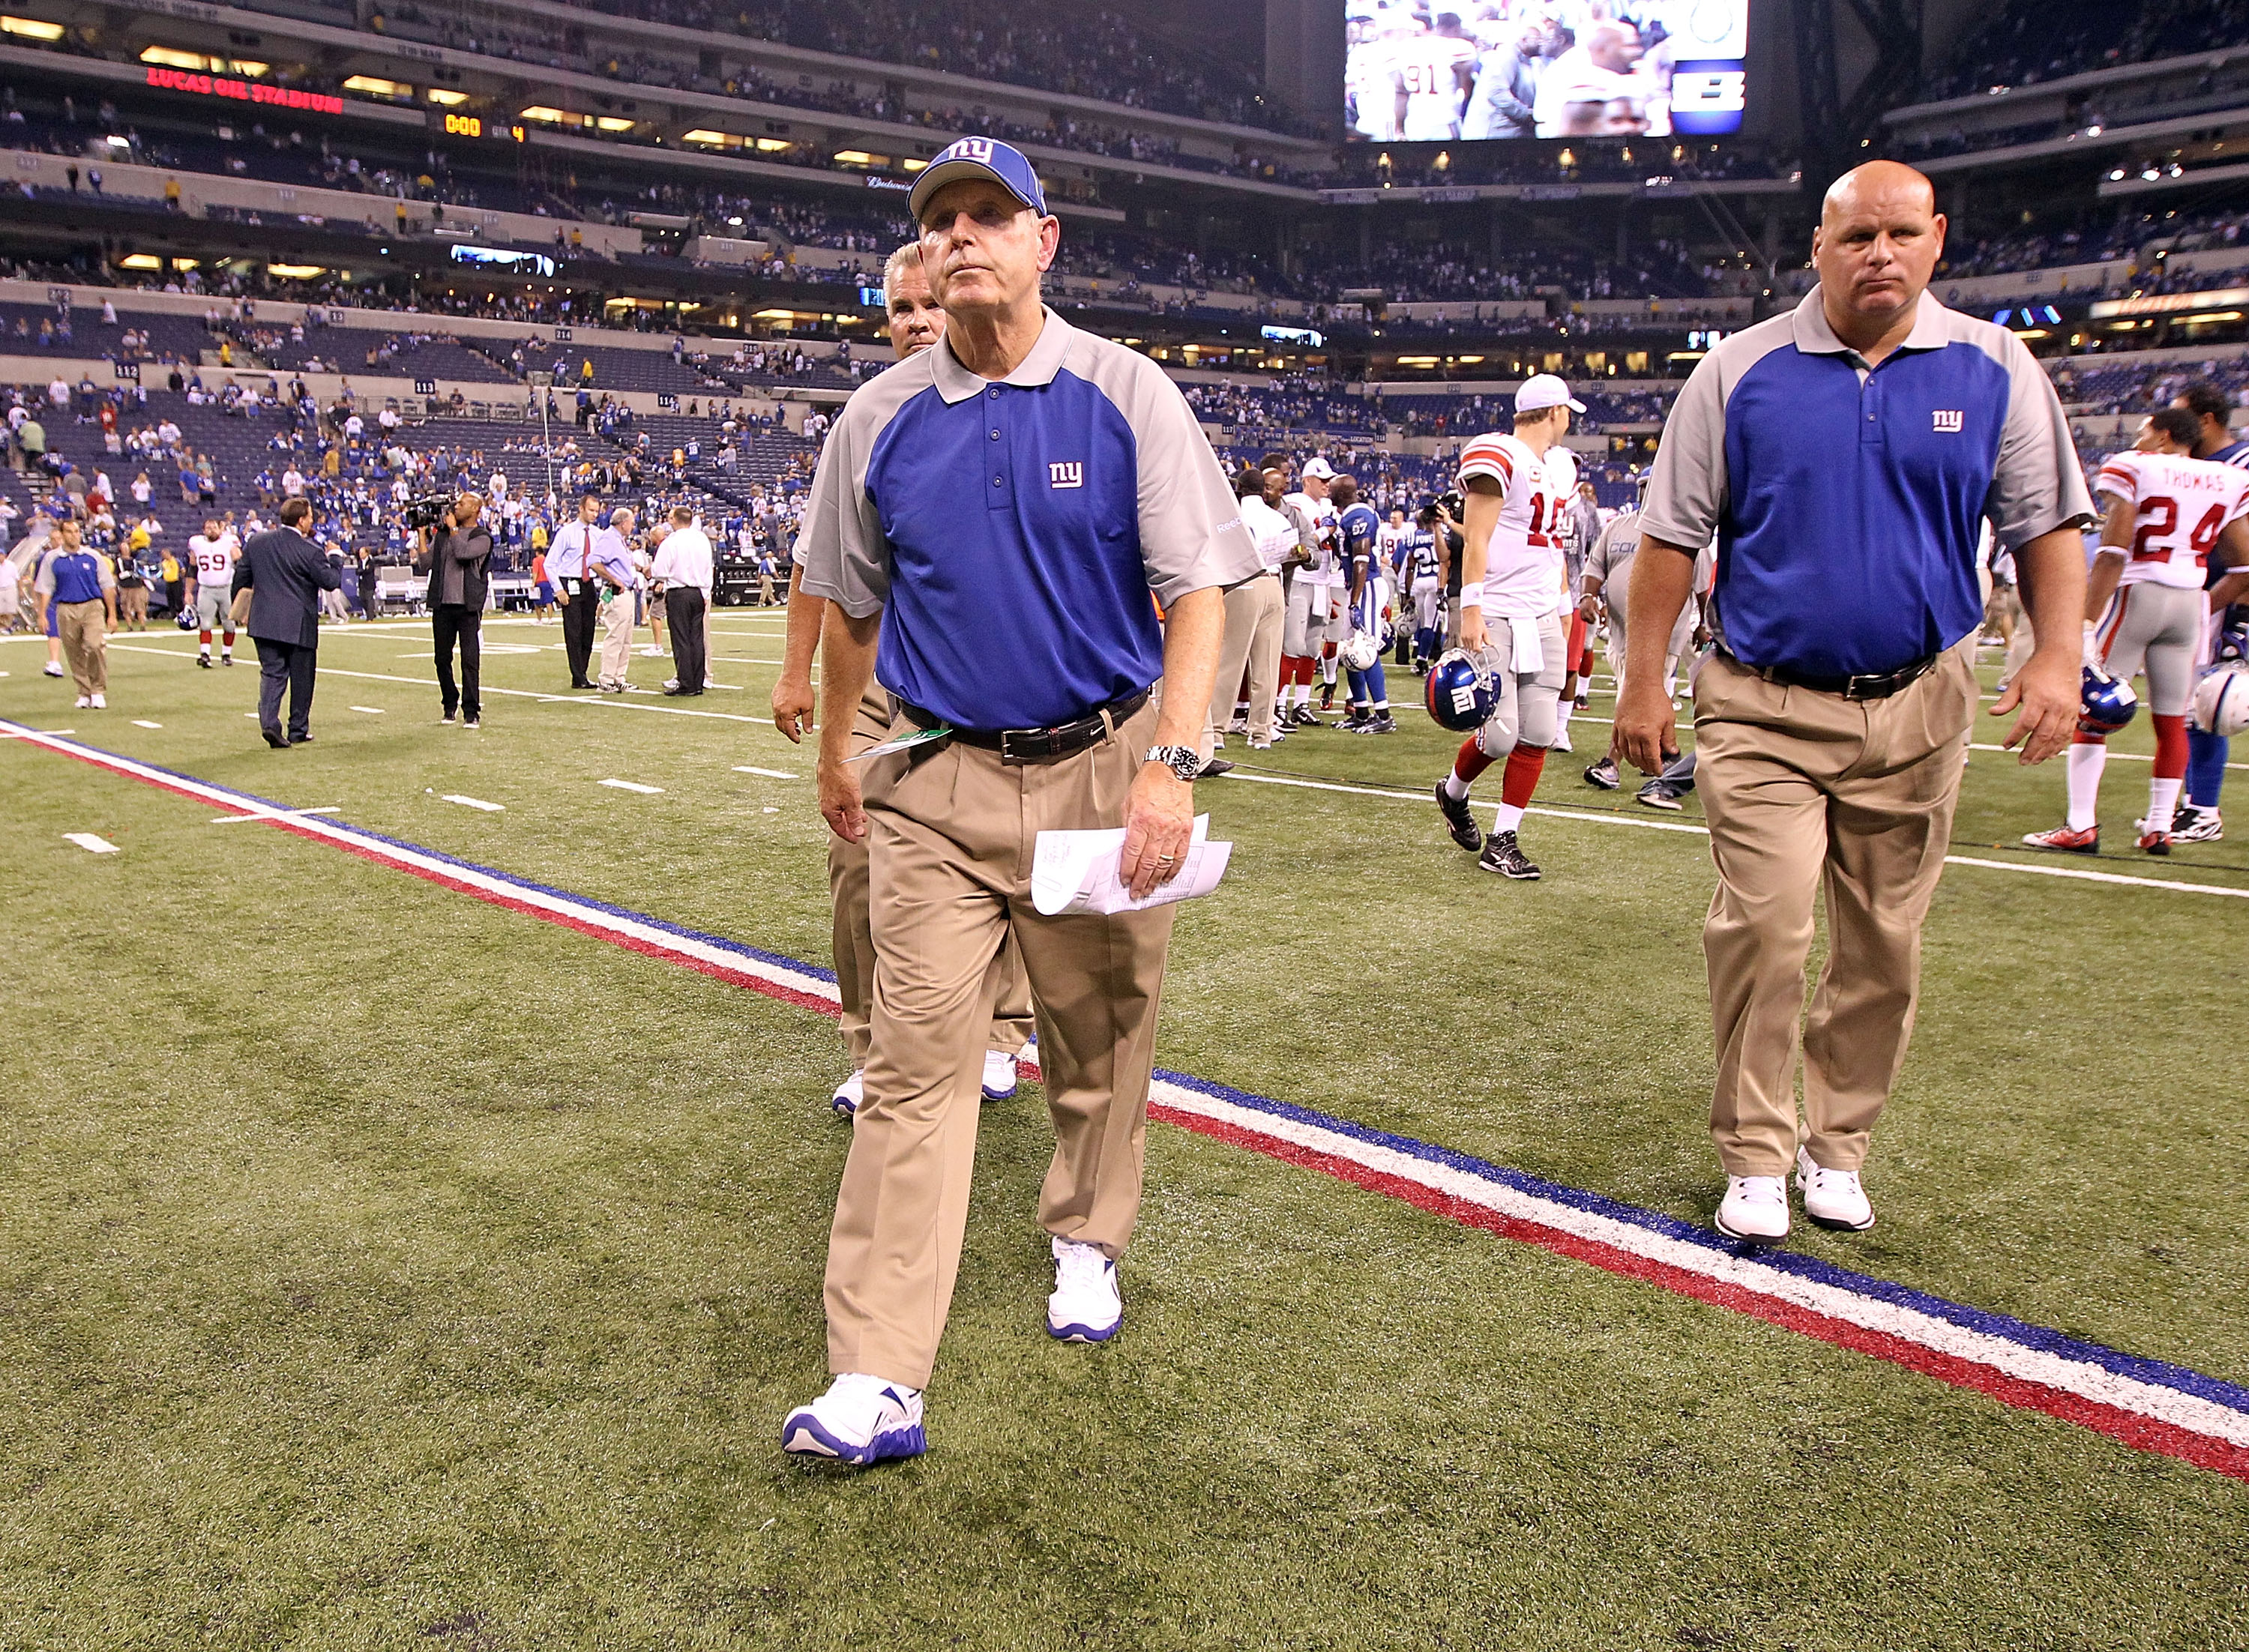 INDIANAPOLIS - SEPTEMBER 19:  Tom Coughlin the Head Coach of the New York Giants walks off of the field following the NFL game against the Indianapolis Colts at Lucas Oil Stadium on September 19, 2010 in Indianapolis, Indiana.  (Photo by Andy Lyons/Getty